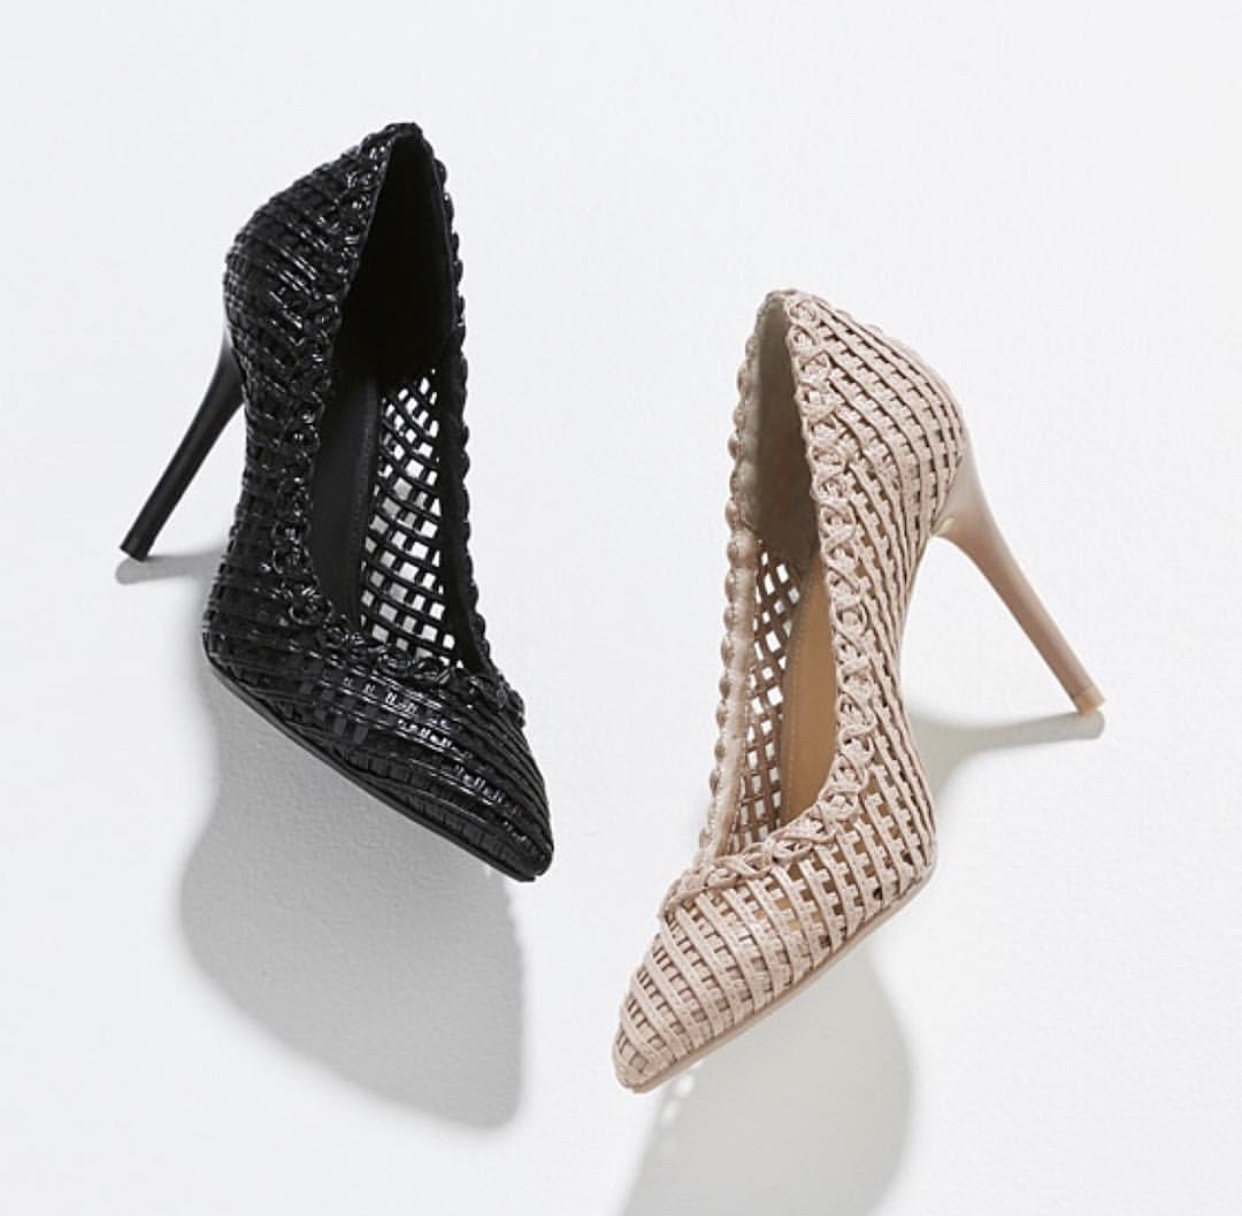 Shoes - A pump (with a closed heel and toe) is more stylish than a sandal when dressed in Melbourne Cup attire.Also, a lady NEVER removes her footwear - even for karaoke!